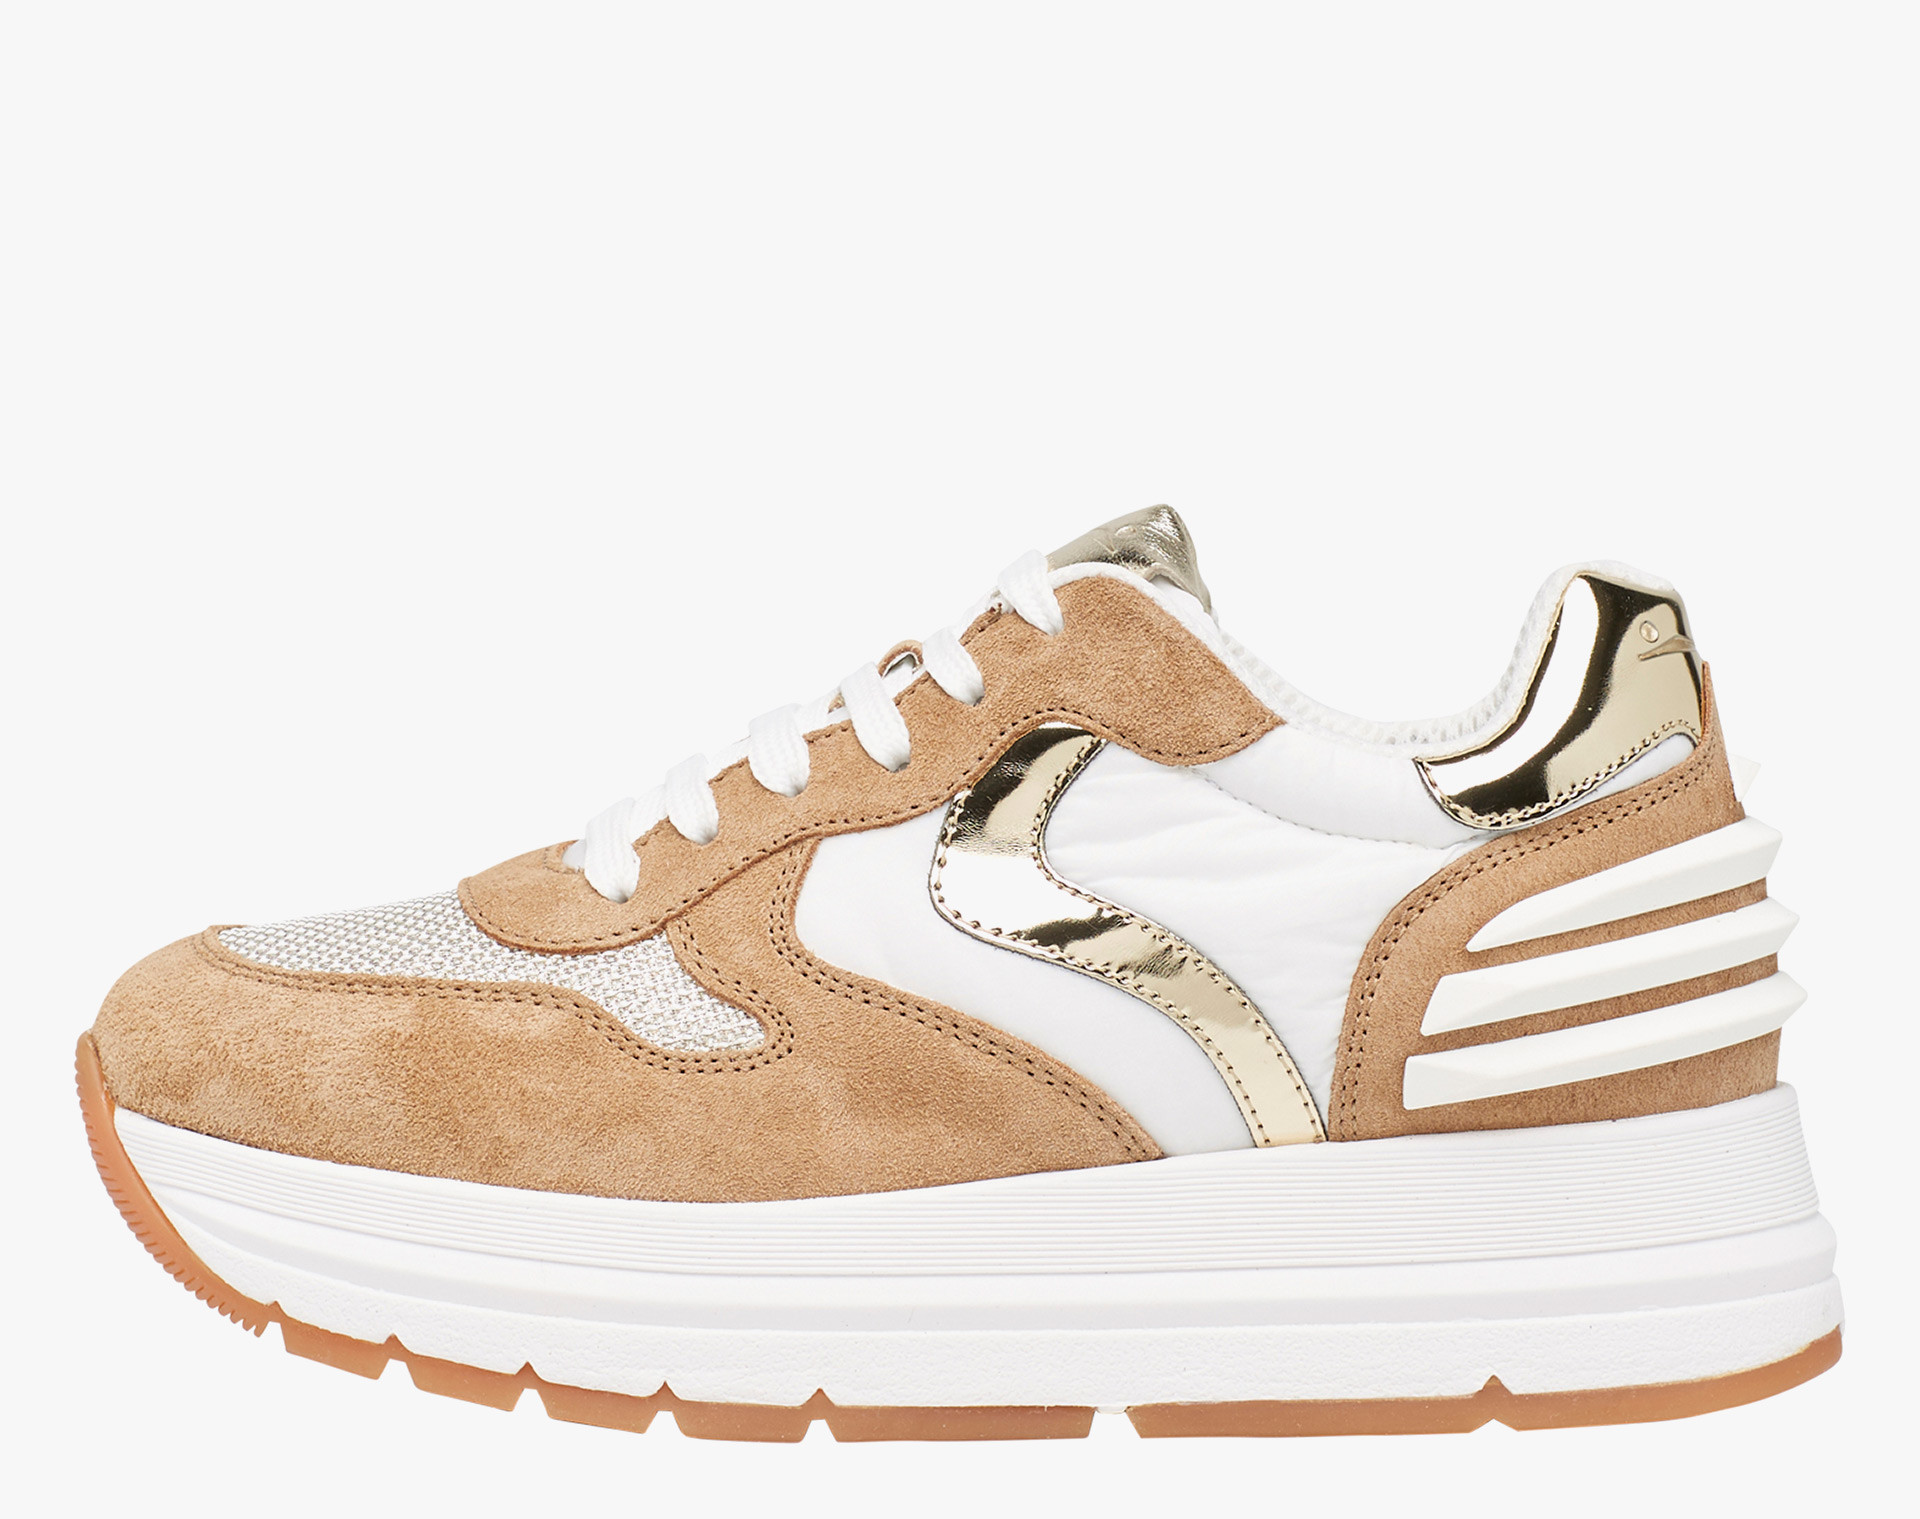 MARAN POWER - Sneaker in suede and technical fabric - Multicolour